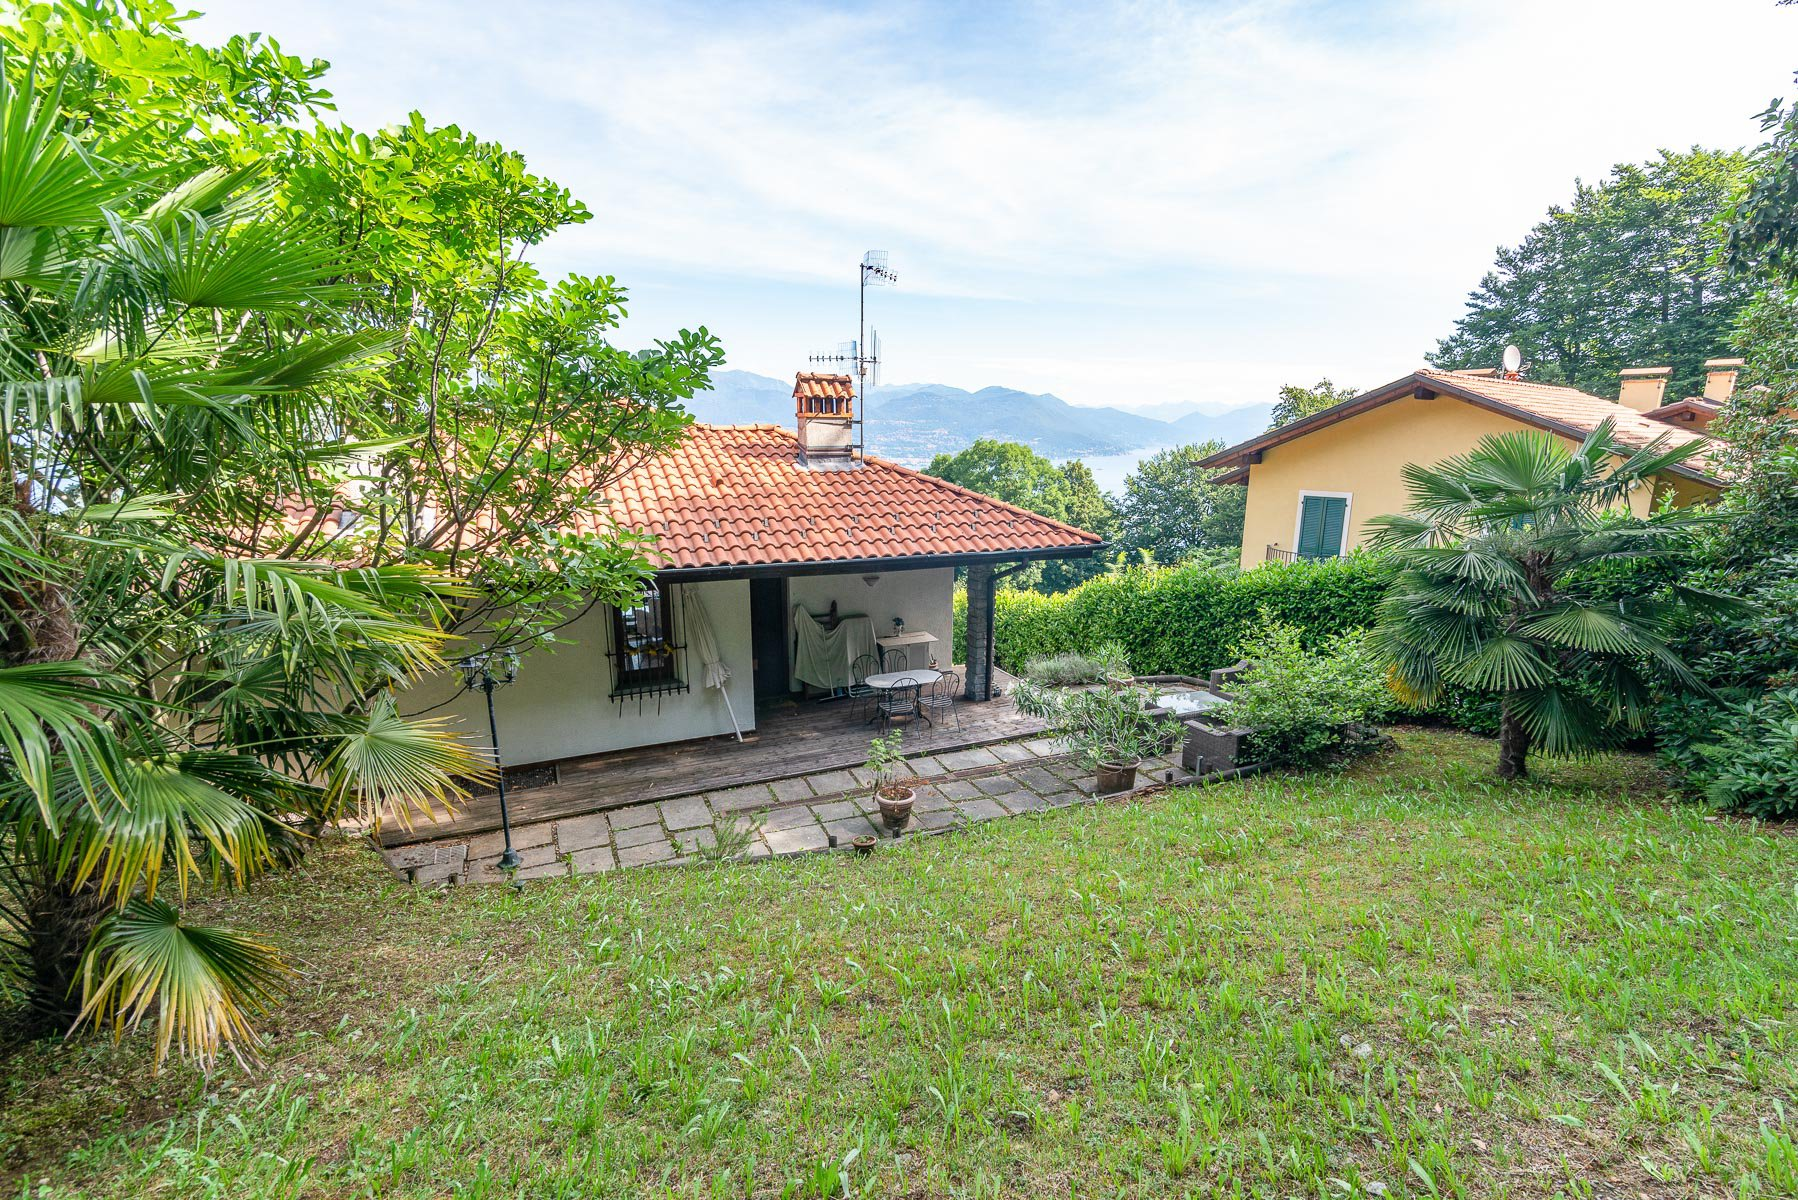 villa for sale on the hill of Stresa with lake view- garden